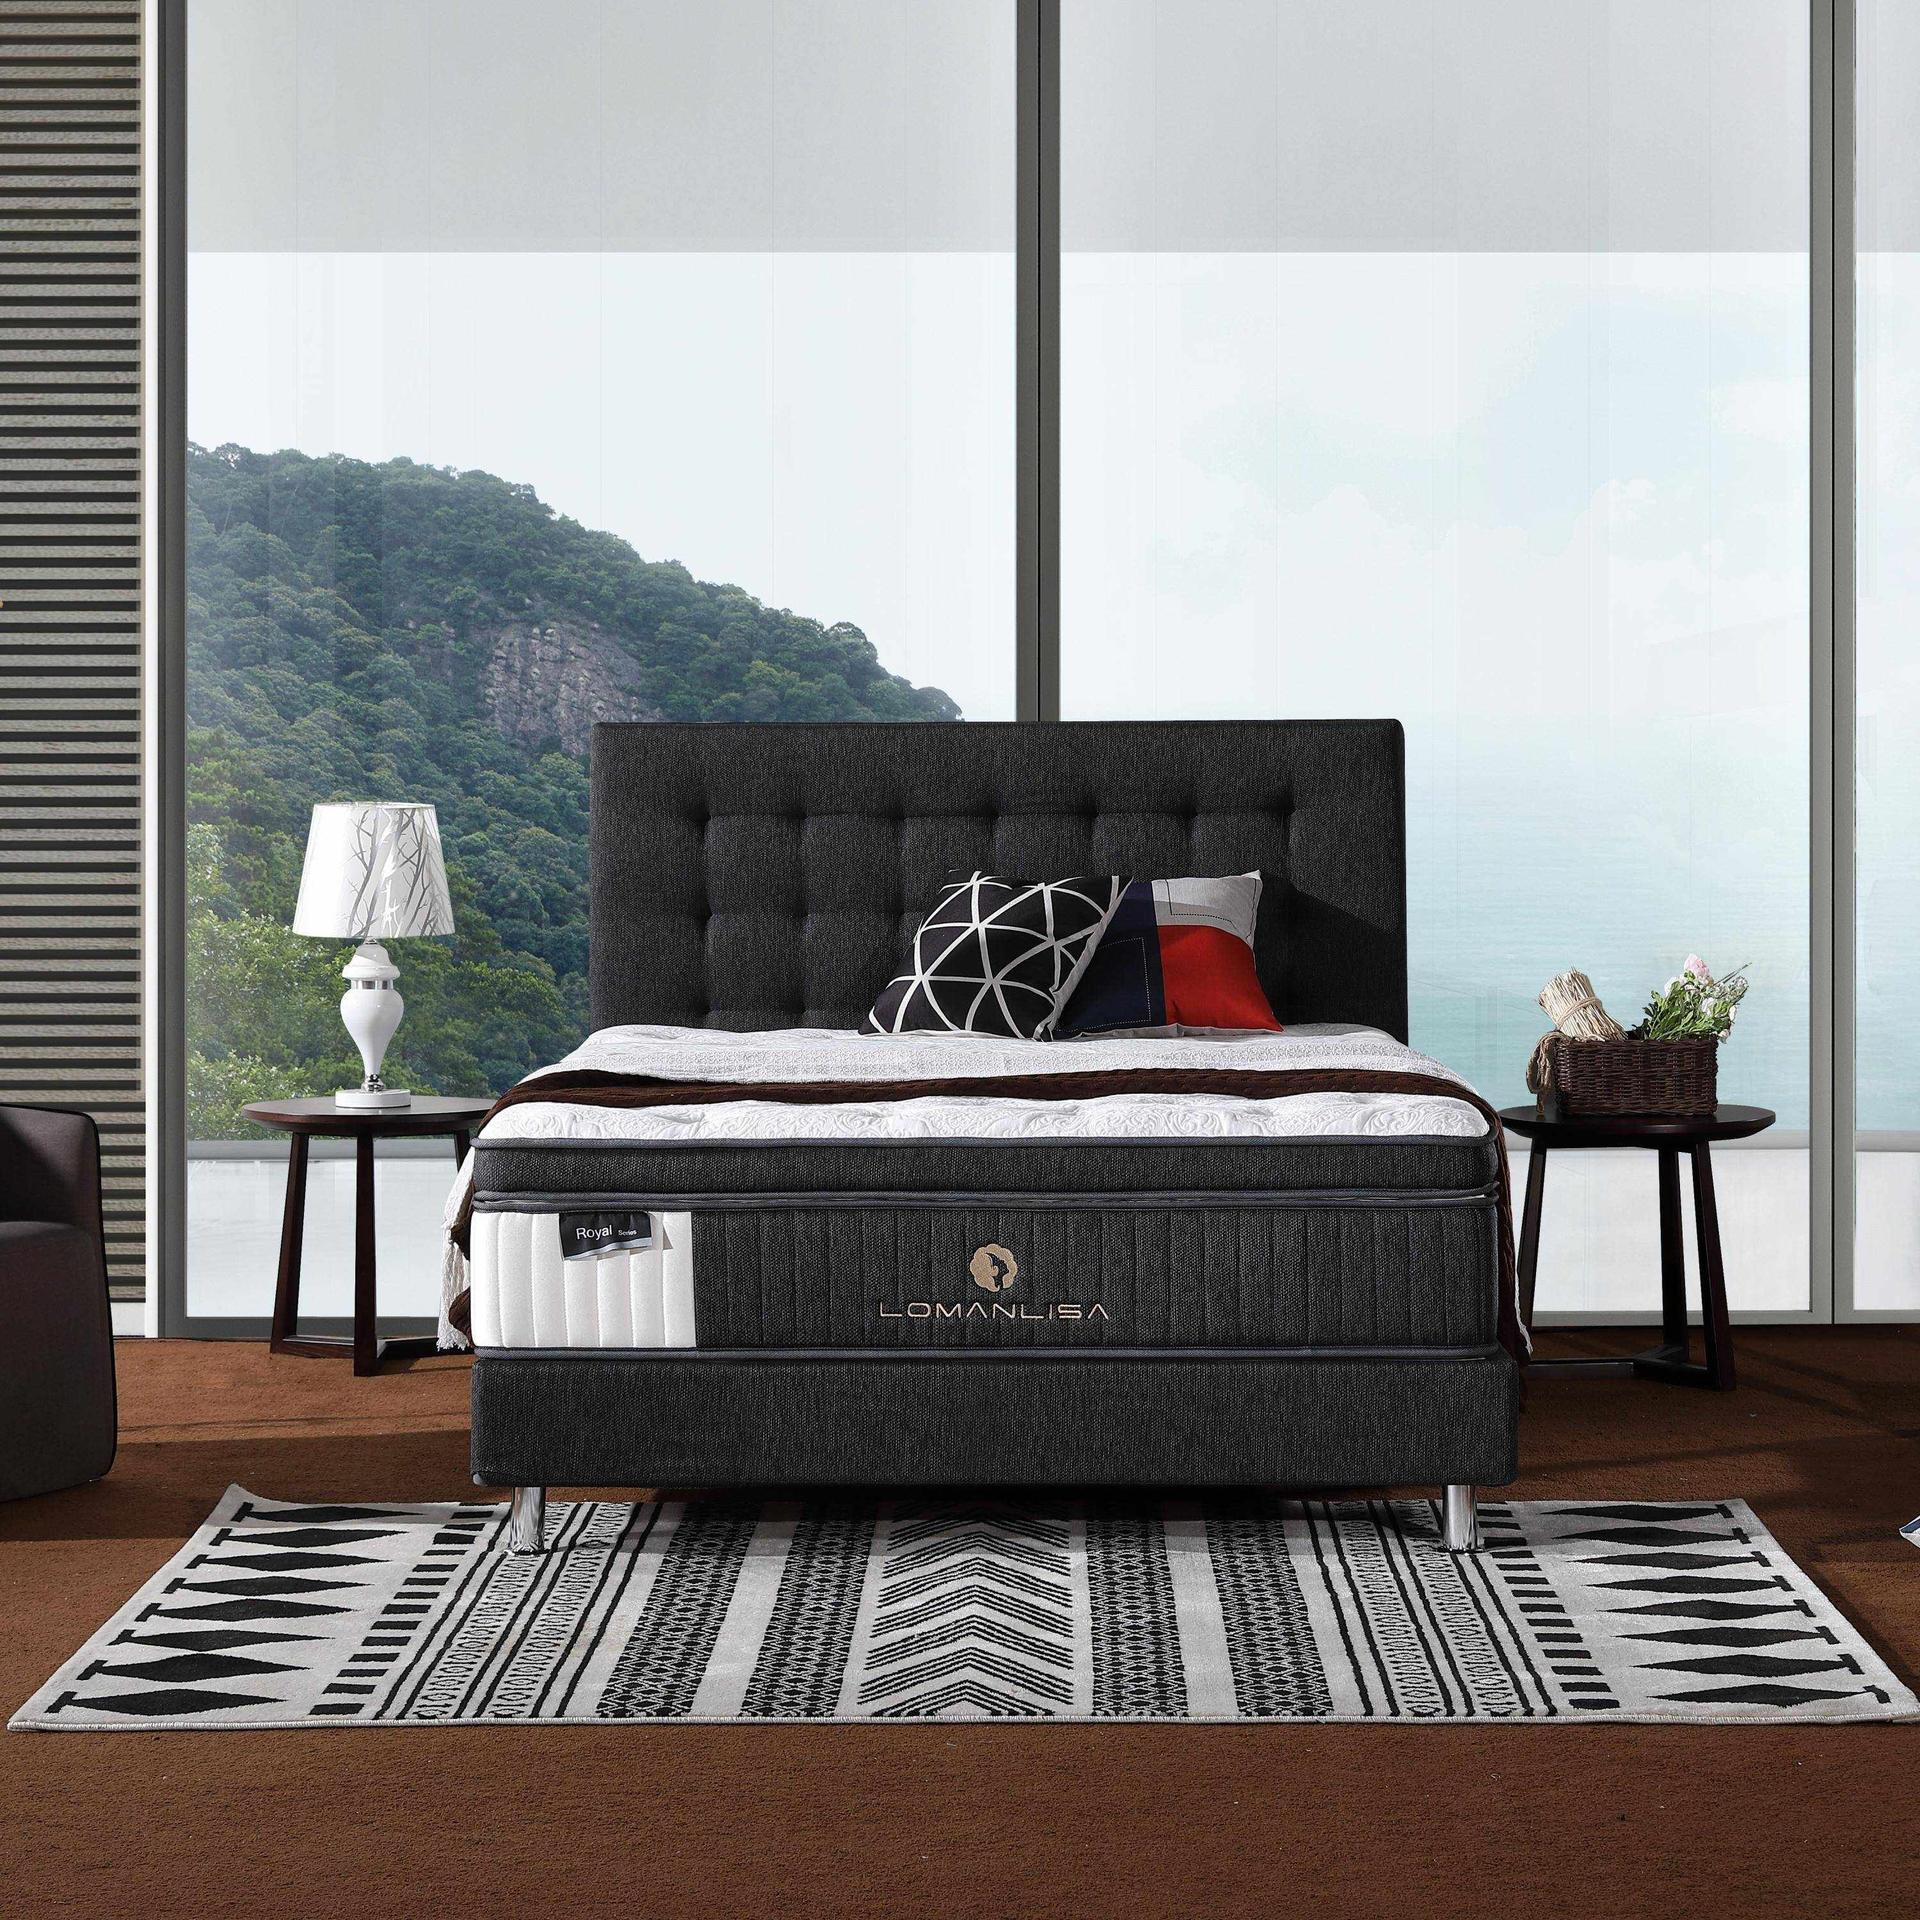 47PA-13 | Nature Latex 5 Zoned Pocket Spring Mattress with Cooling Fabric and Convoluted Foam